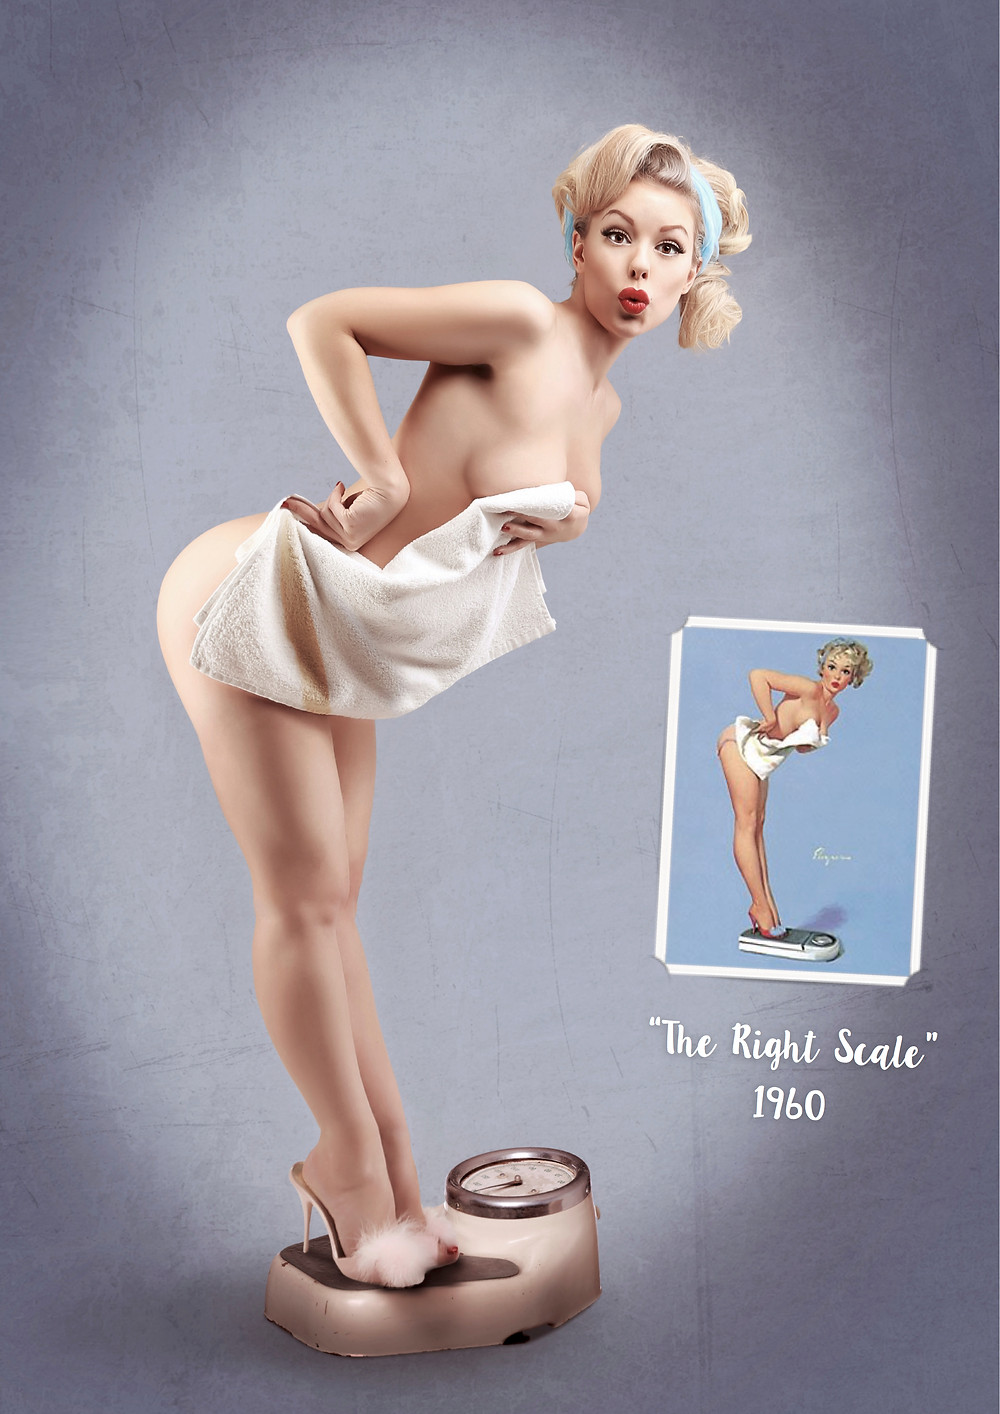 The Right Scale 1960 Gil Elvgren inspired recreation pin up art with Heather Valentine Model by Dollhouse Photography